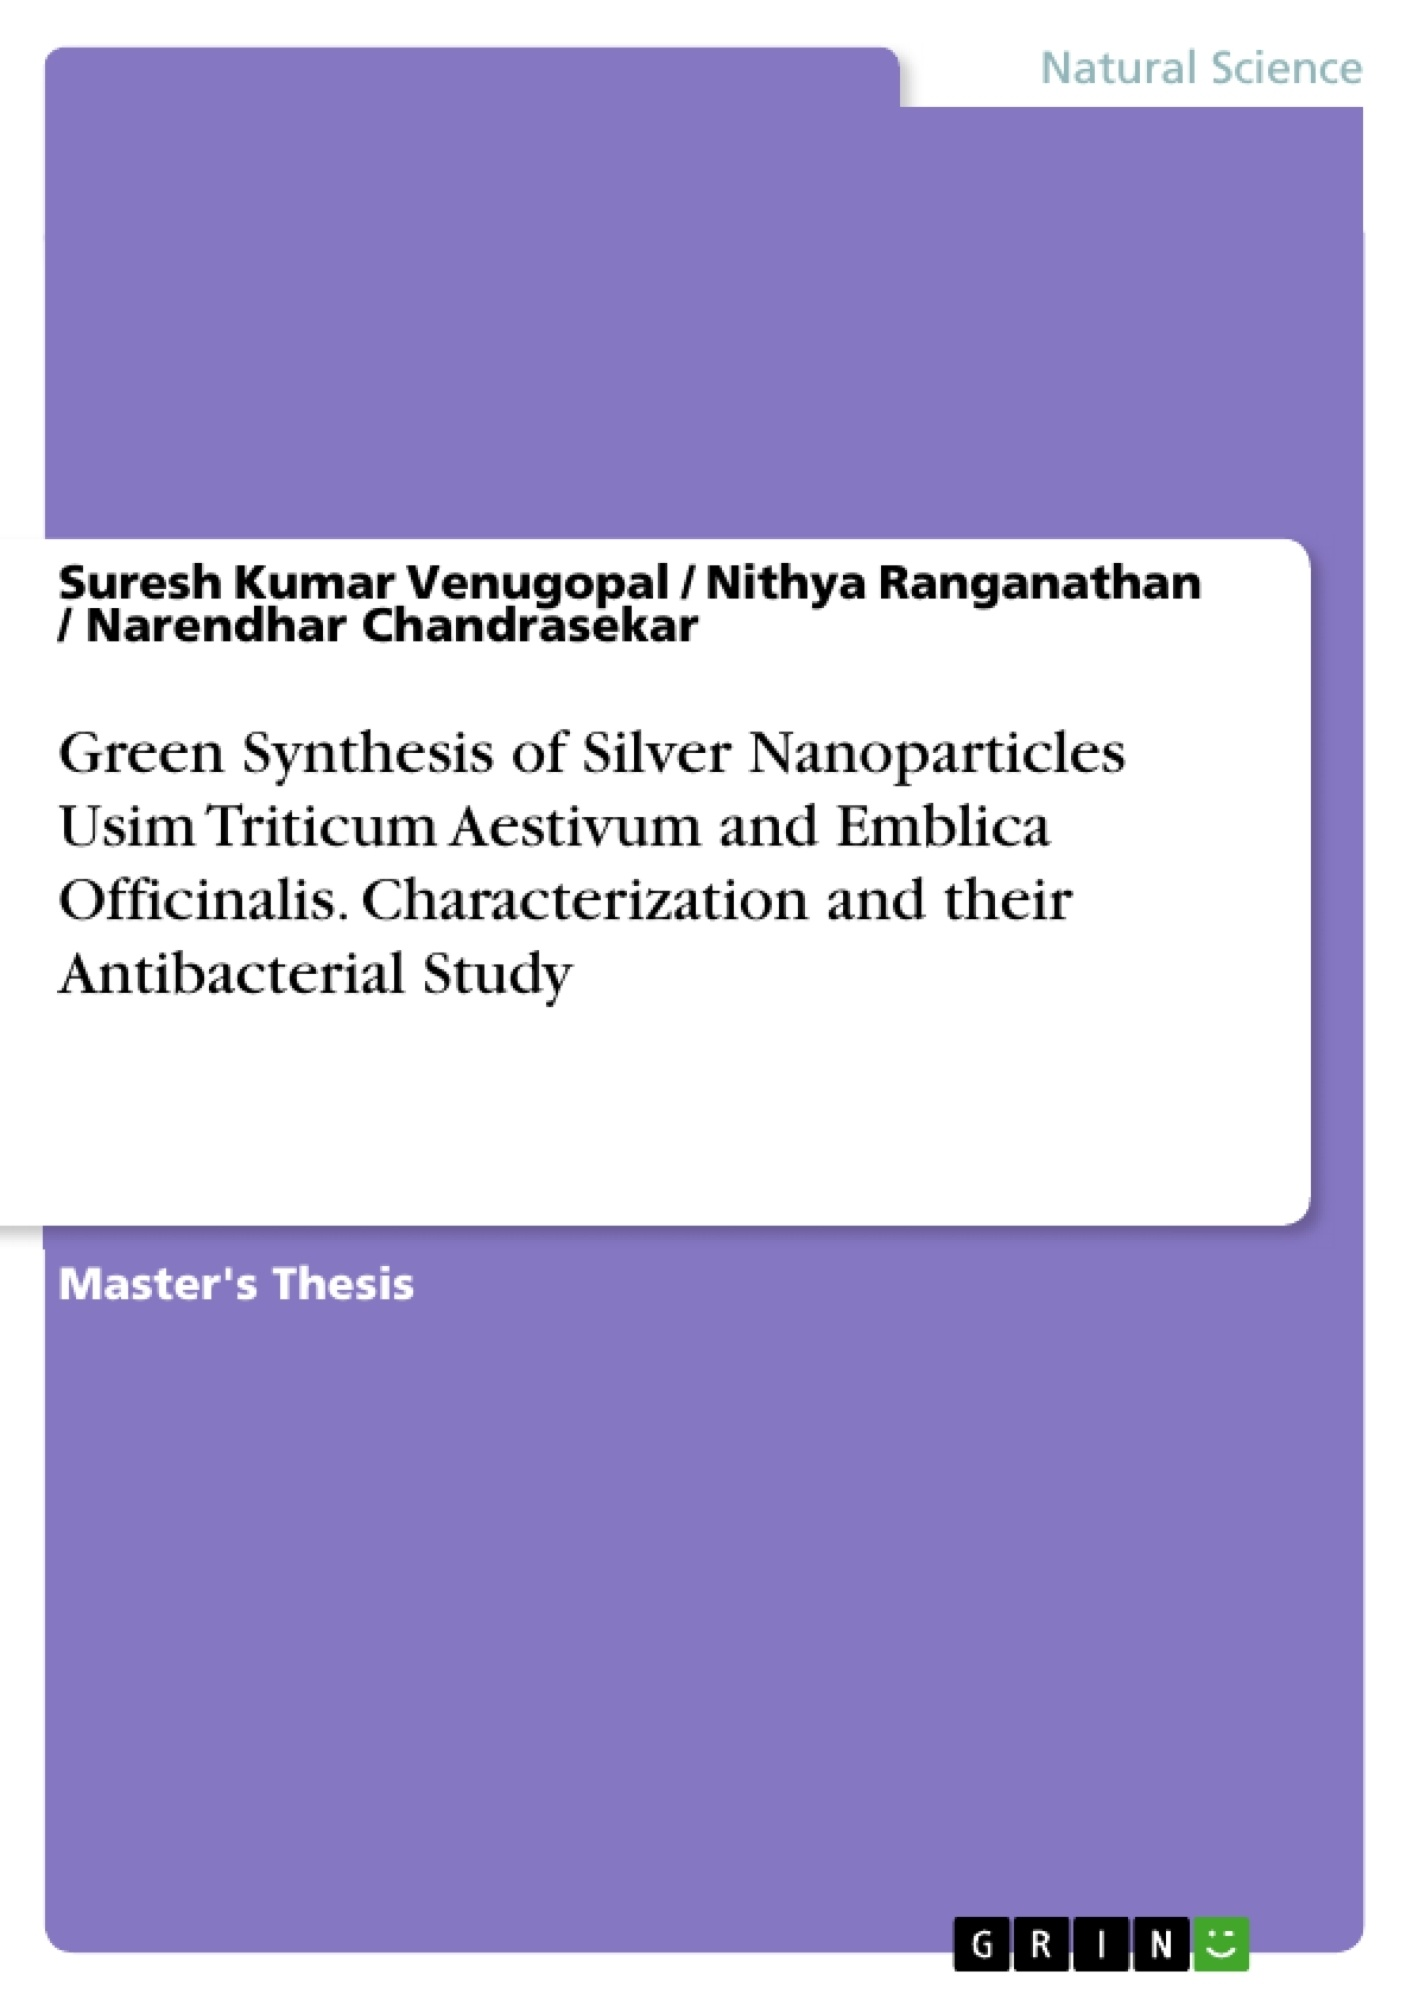 Title: Green Synthesis of Silver Nanoparticles Usim Triticum Aestivum and Emblica Officinalis. Characterization and their Antibacterial Study